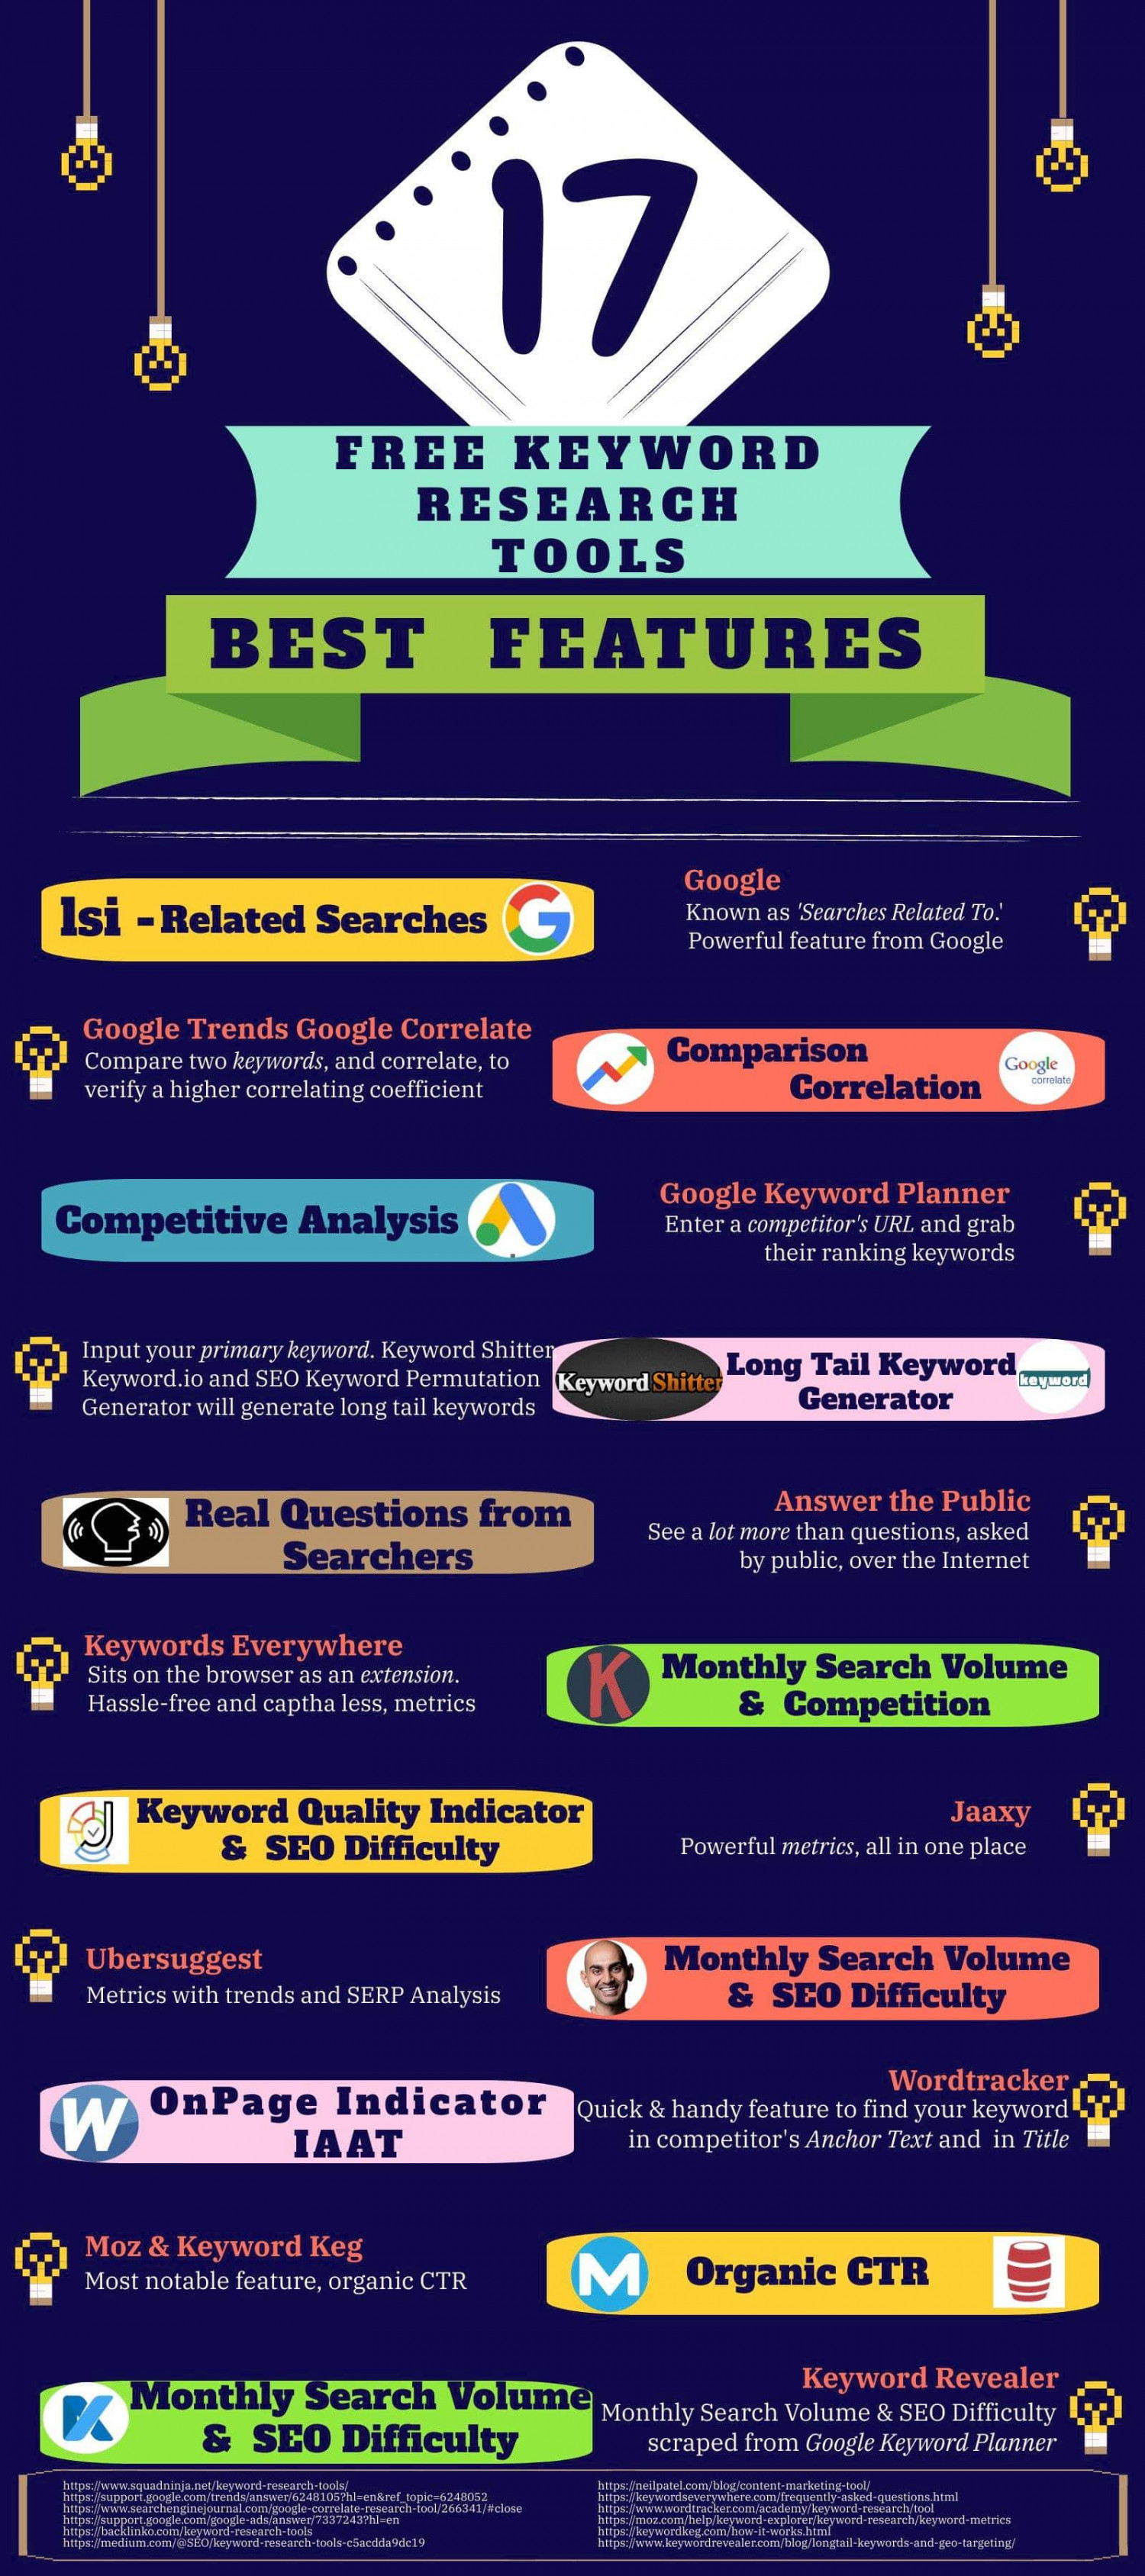 17 Best Free Keyword Research Tools Infographic